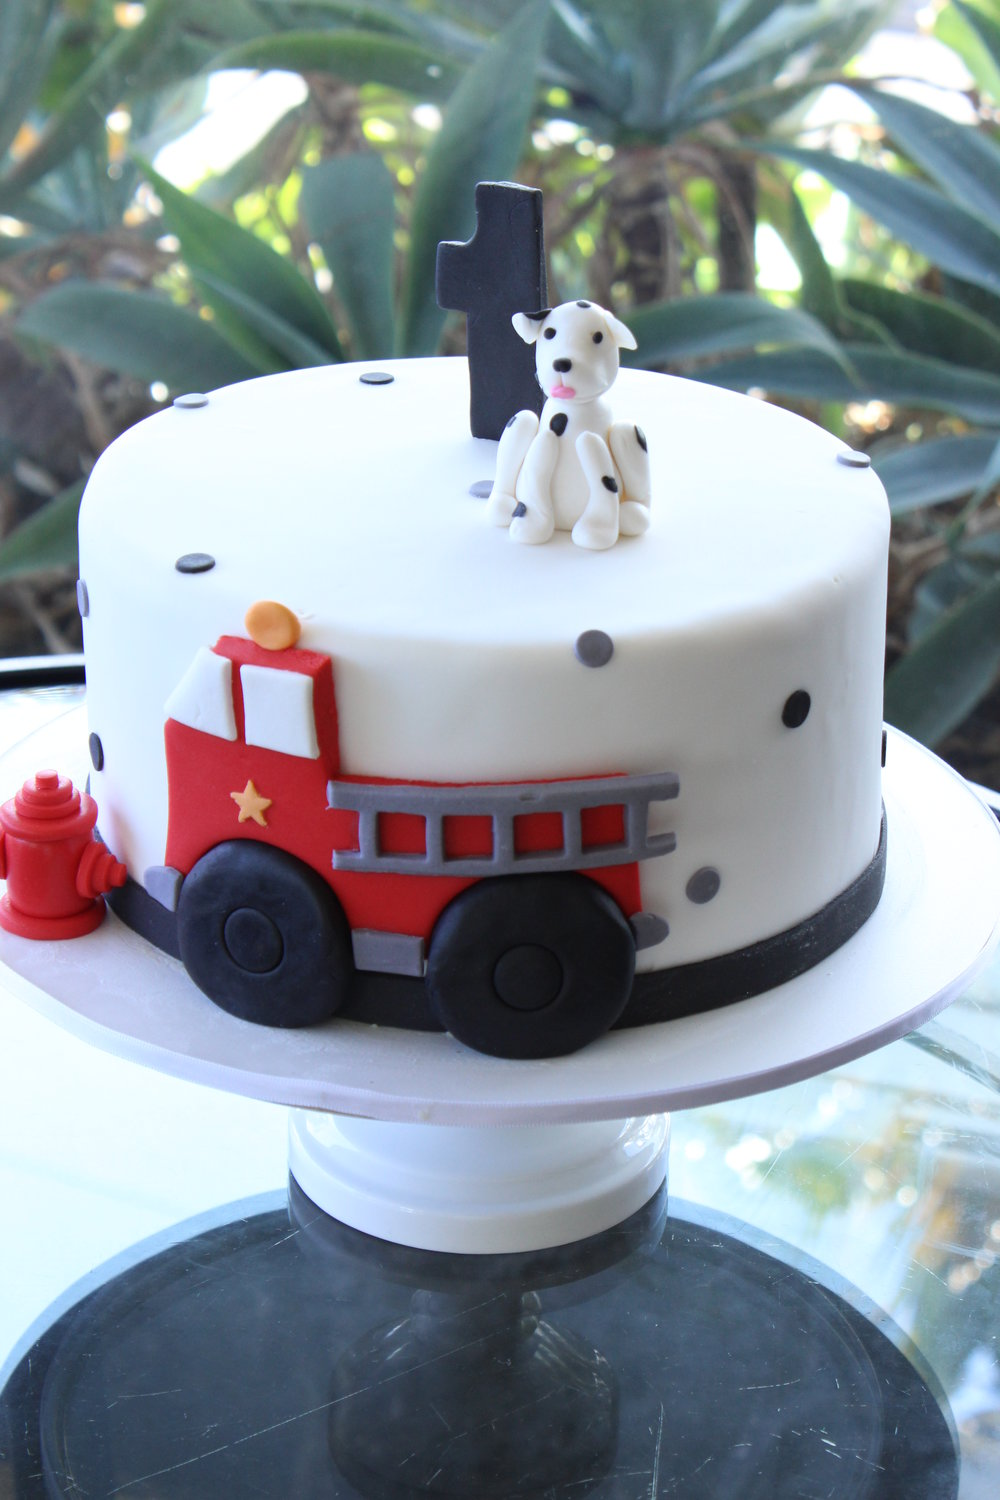 Copy of single tier rolled fondant first birthday cake firefighter theme Hilo Hawaii Big Island Kailua Kona